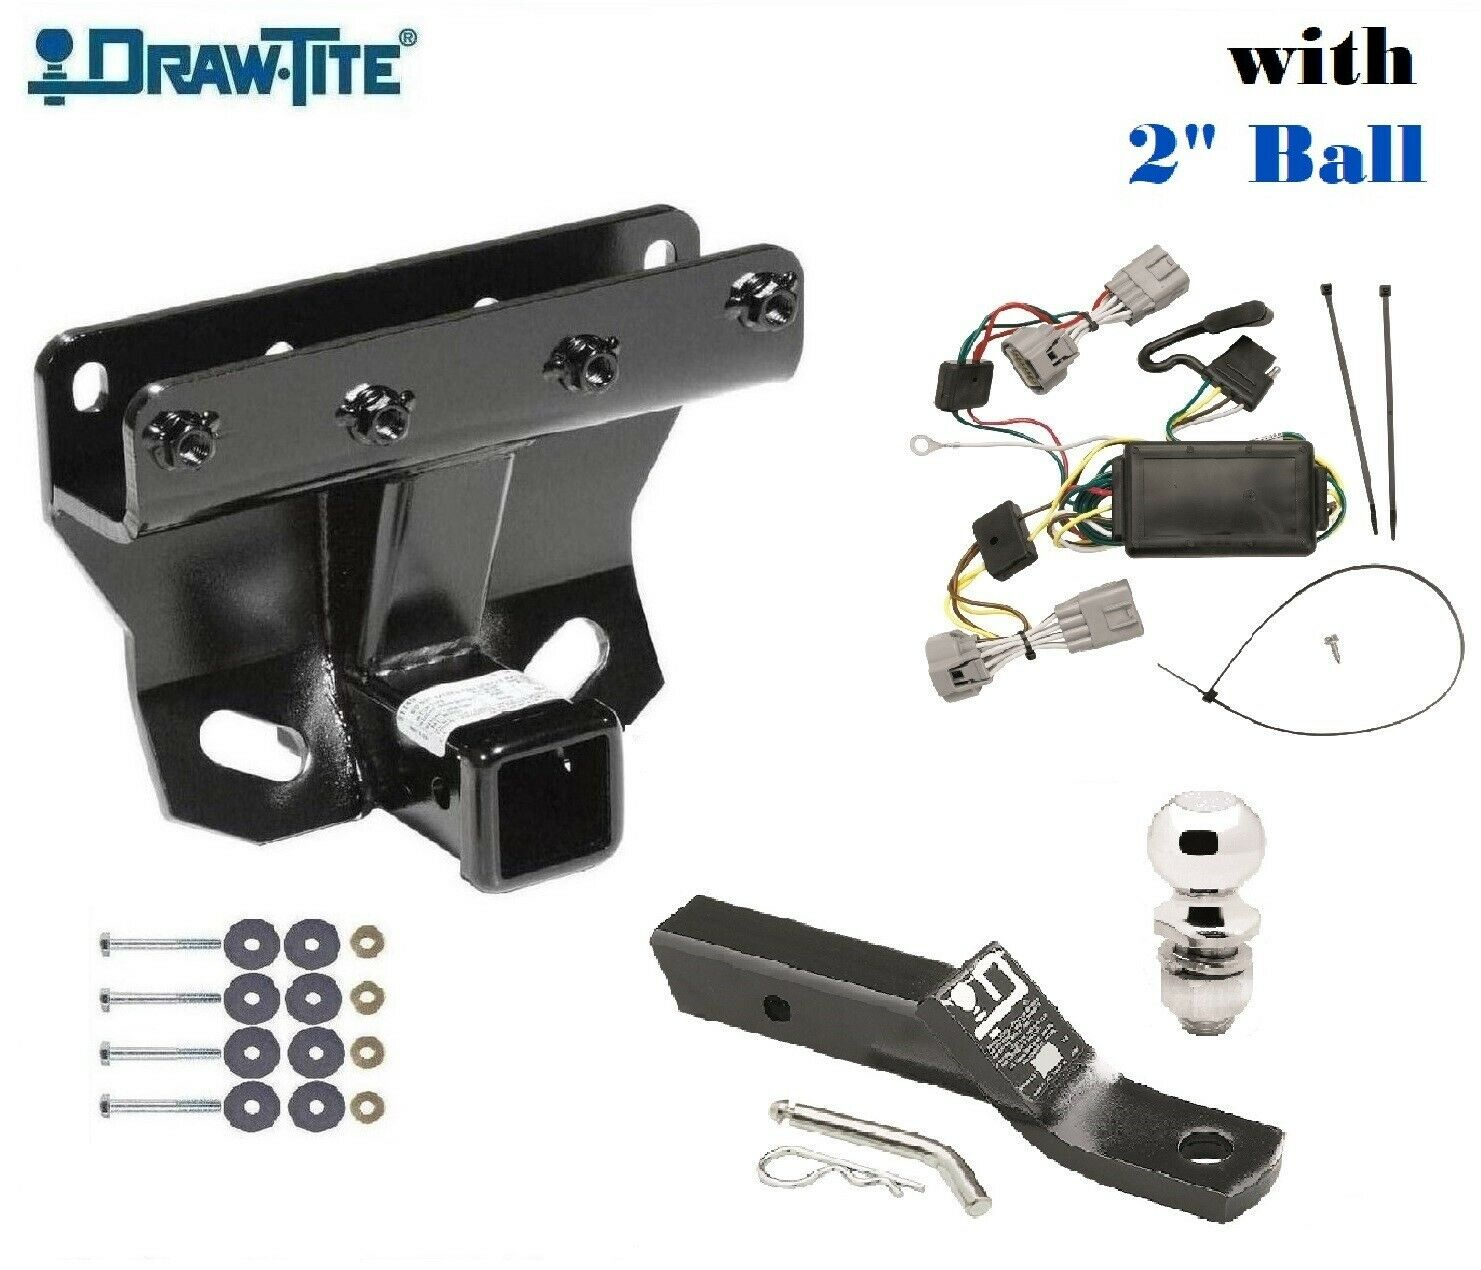 Cls3 Trailer Hitch Package W 2 Ball For 2005 2006 Jeep Grand Cherokee 75338 1 Of 6free Shipping